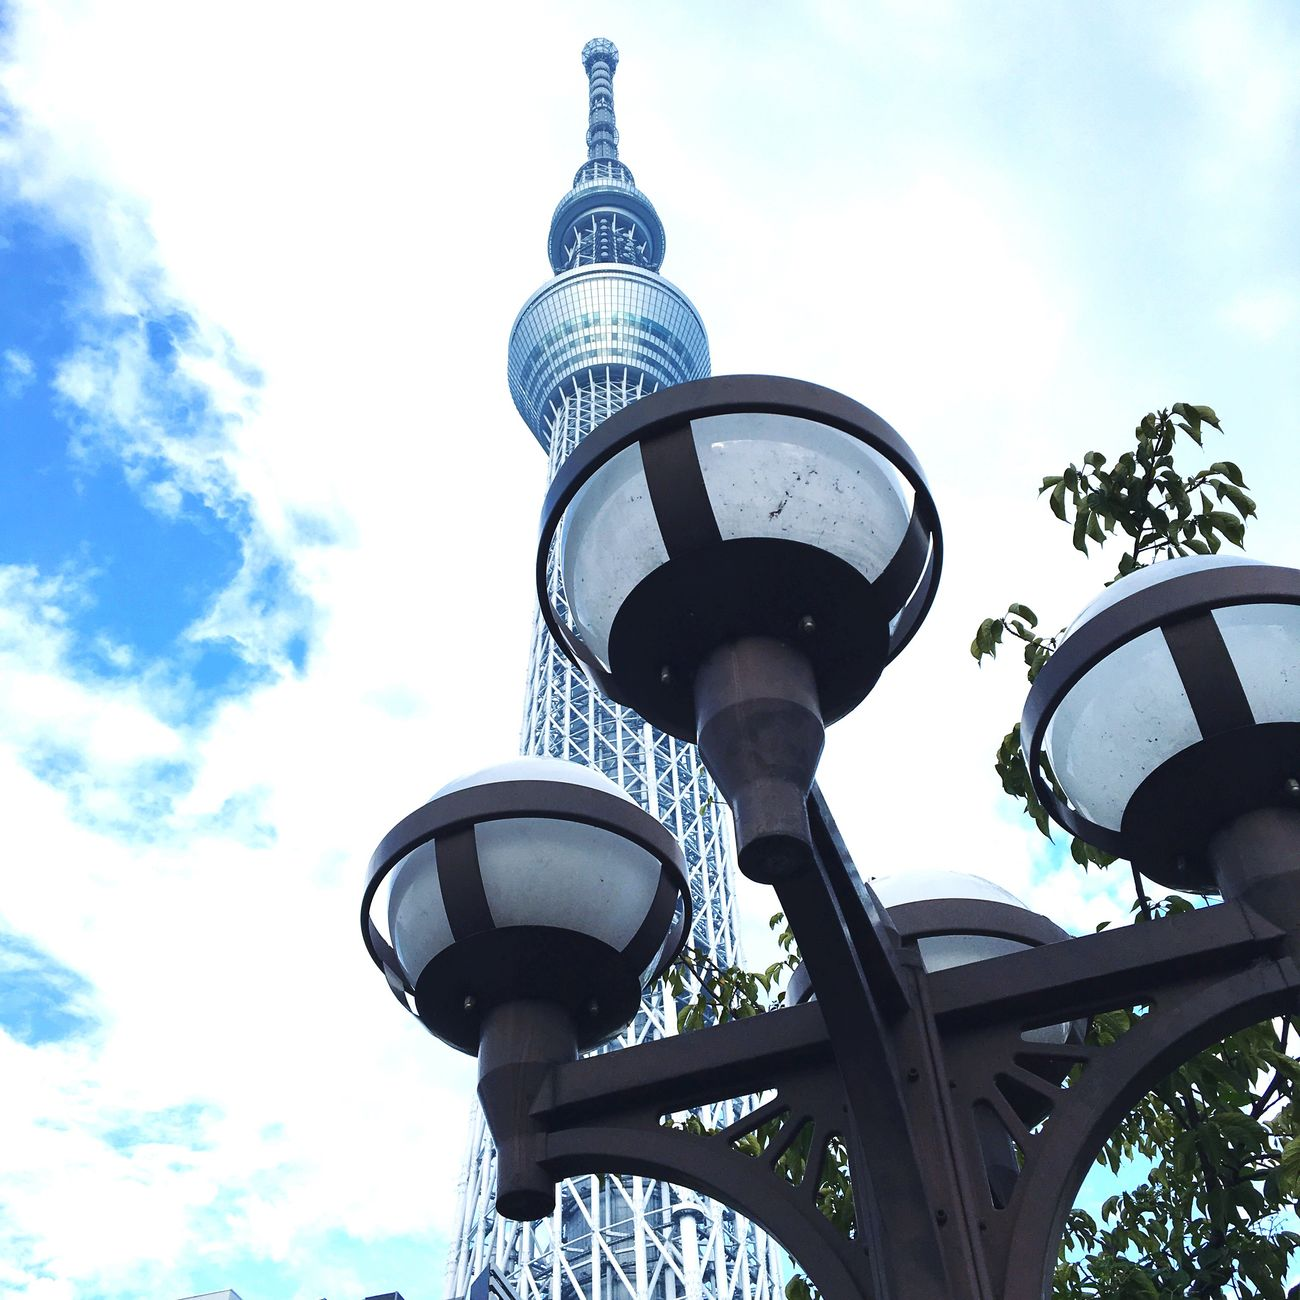 Tokyo Sky Tree Tokyo Street Photography Tokyo Days Photo Of The Day